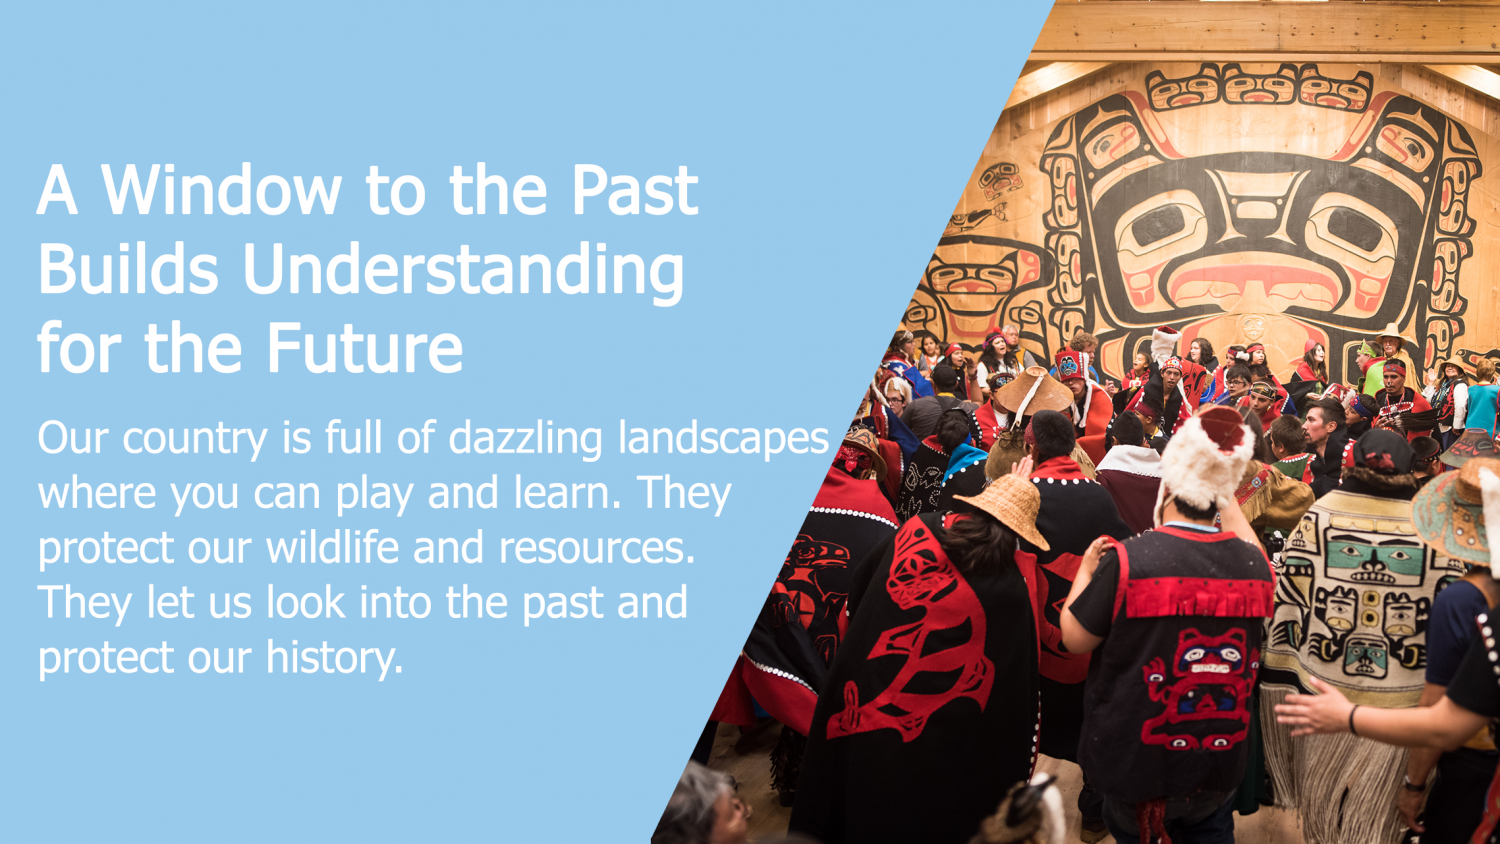 A Window to the Past Builds Understanding for the Future: Our country is full of dazzling landscapes where you can play and learn. They protect our wildlife and resources. They let us look into the past and protect our history.